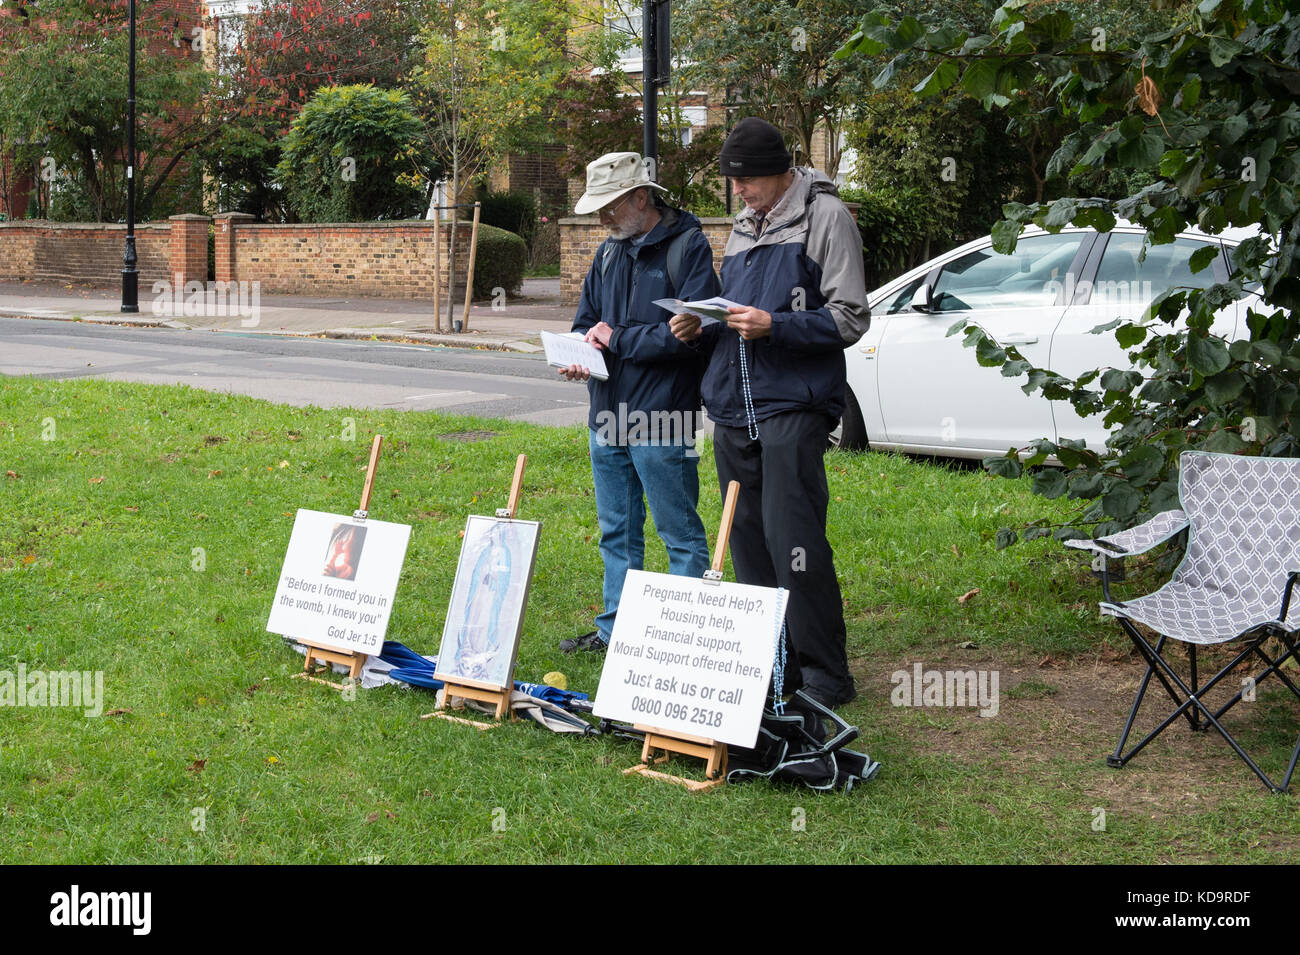 London, United Kingdom. 11 October 2017. Councillors in Ealing have backed calls to stop anti-abortion protestters - Stock Image